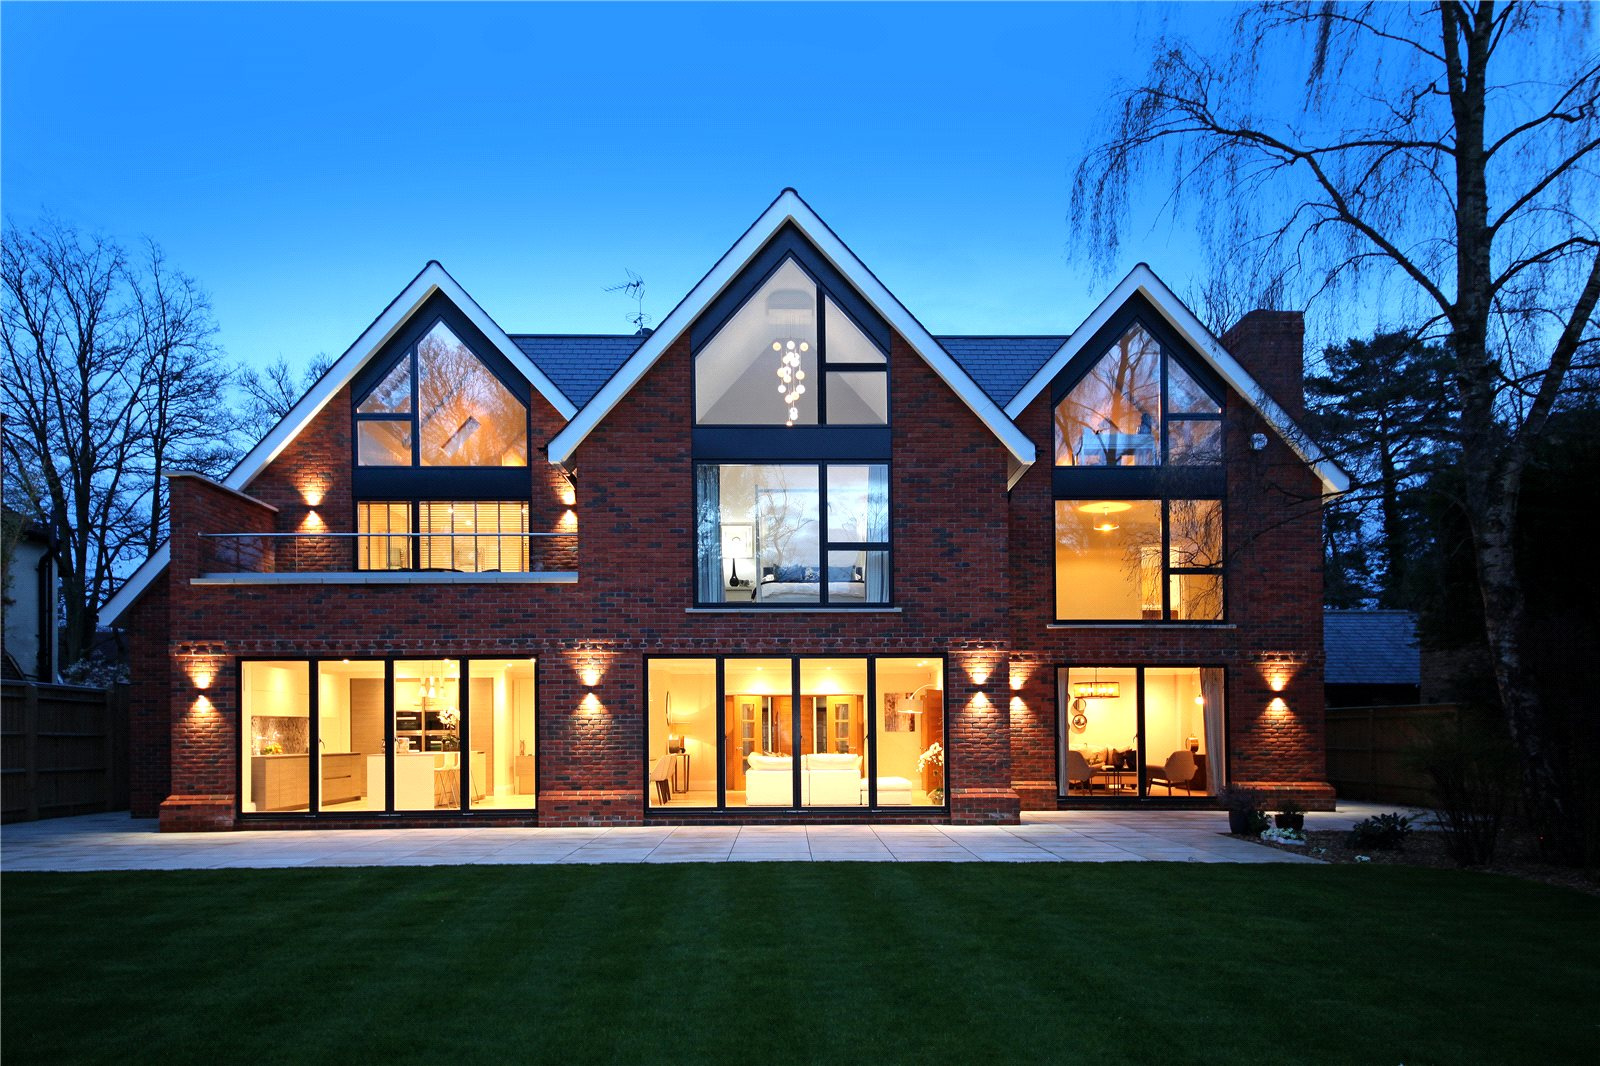 Single Family Home for Sale at Larch Avenue, Sunninghill, Ascot, Berkshire, SL5 Ascot, England